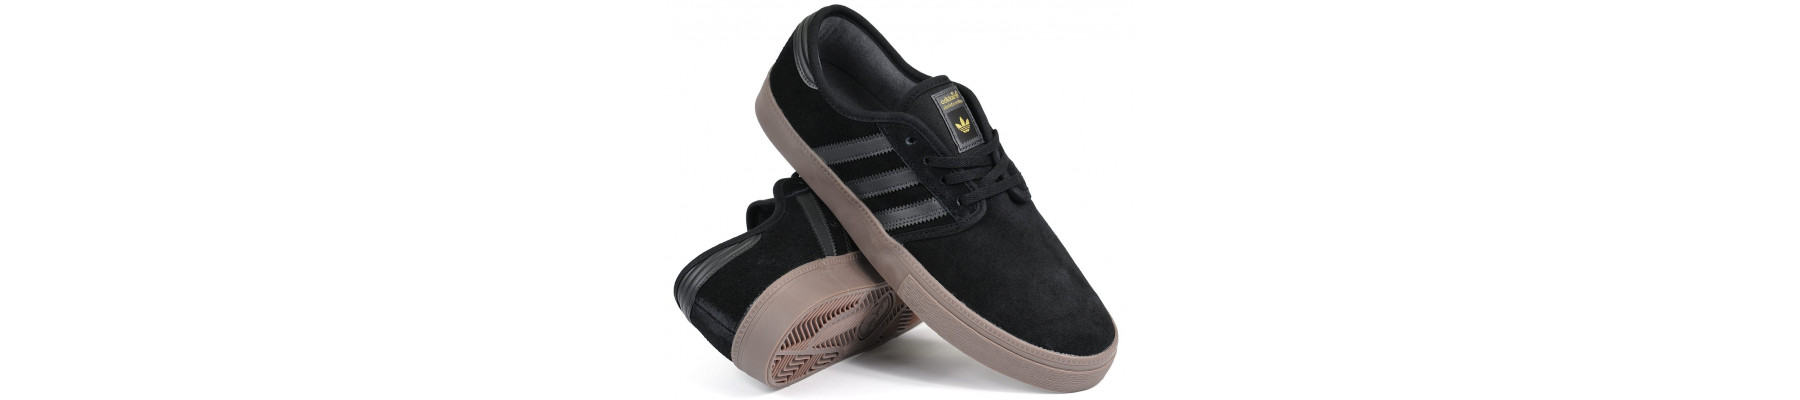 Adidas  Skateboarding Seeley BlackGum